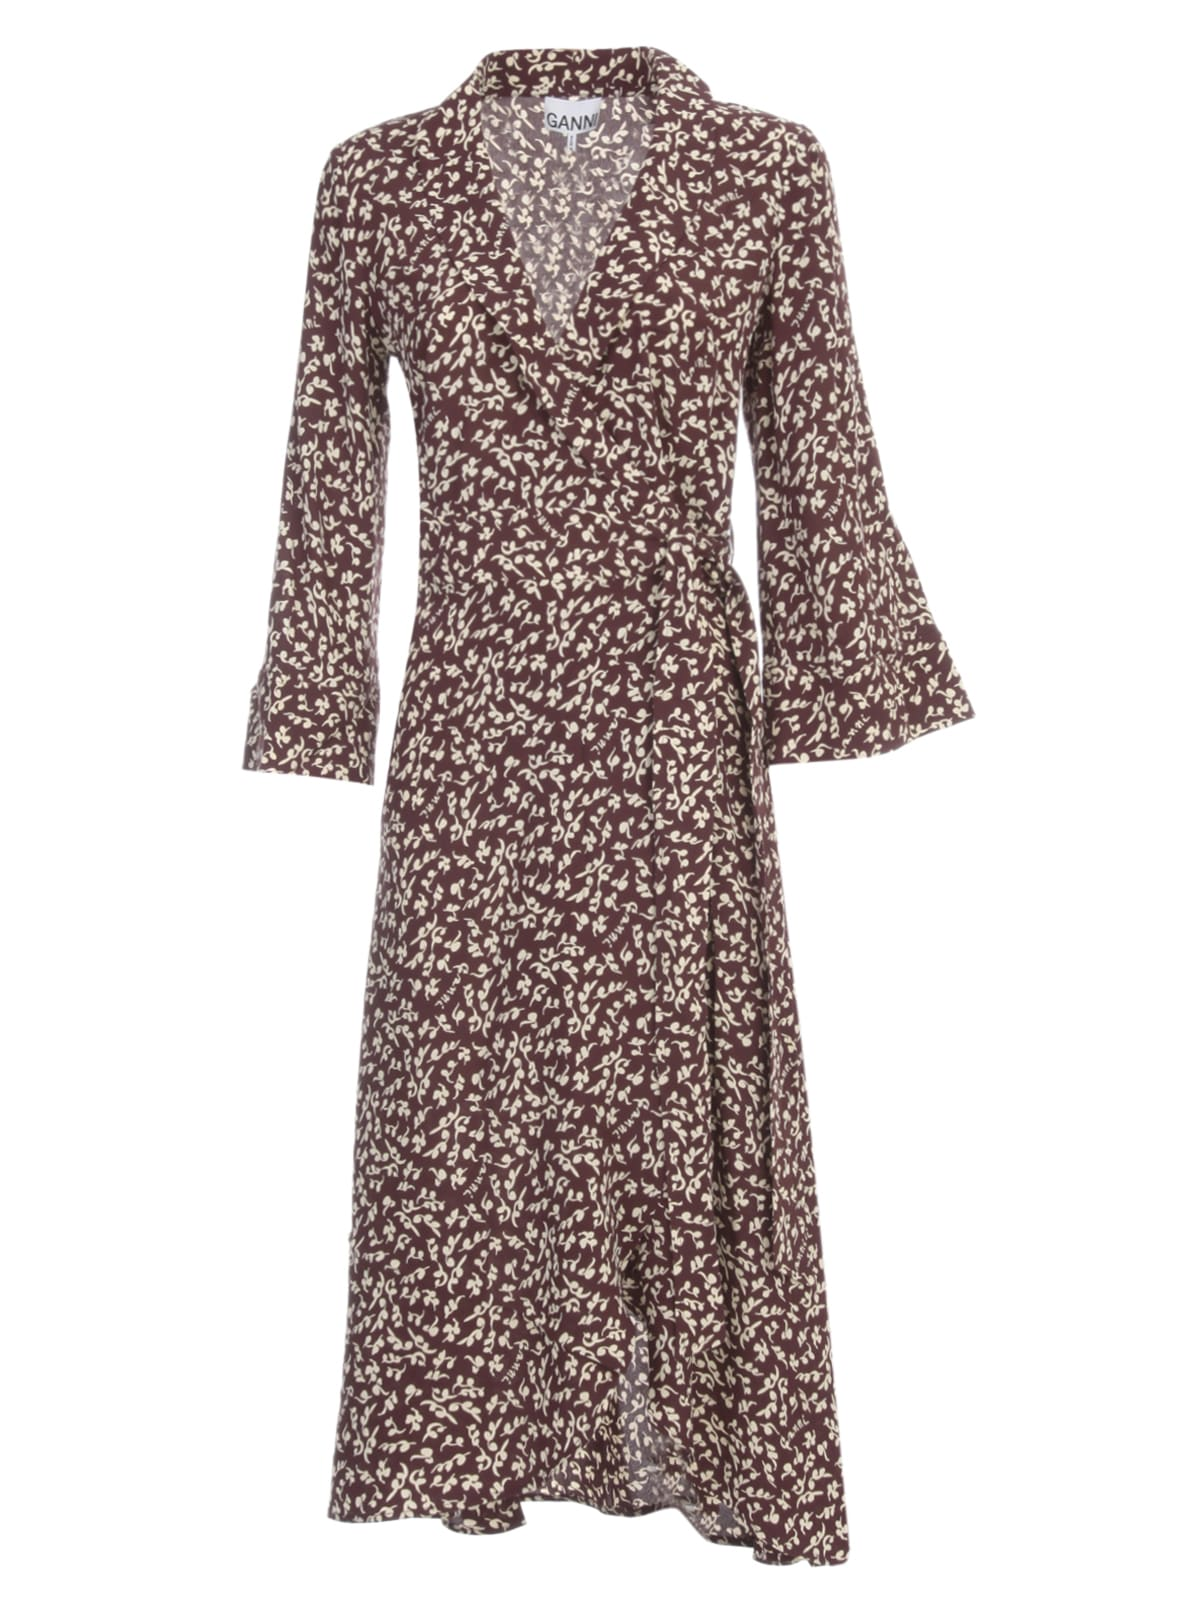 Buy Ganni Printed Crepe Dress L/s Fantasy online, shop Ganni with free shipping